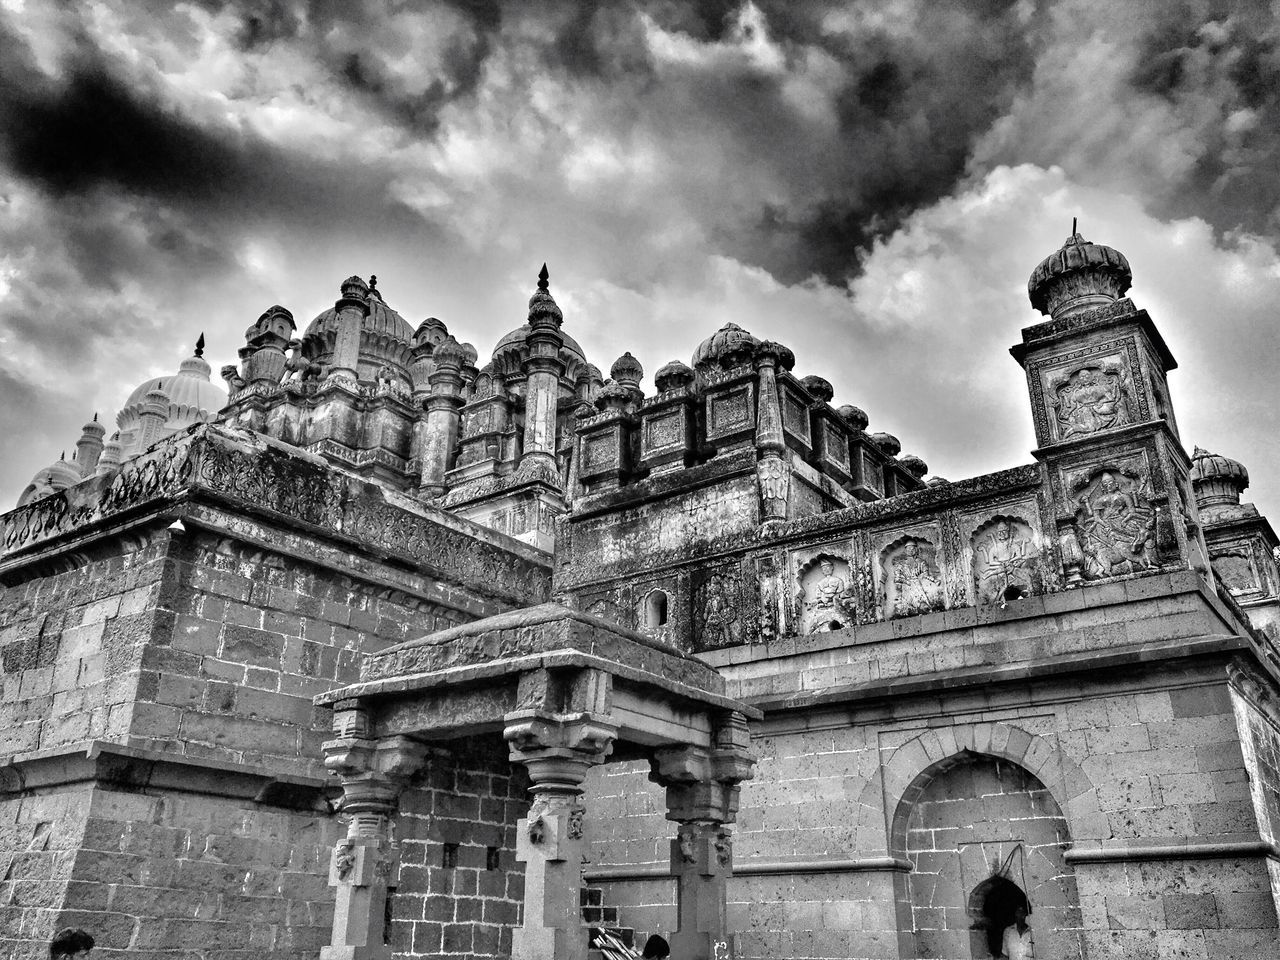 architecture, built structure, building exterior, sky, cloud - sky, low angle view, religion, history, spirituality, place of worship, outdoors, day, no people, statue, travel destinations, sculpture, city, ancient civilization